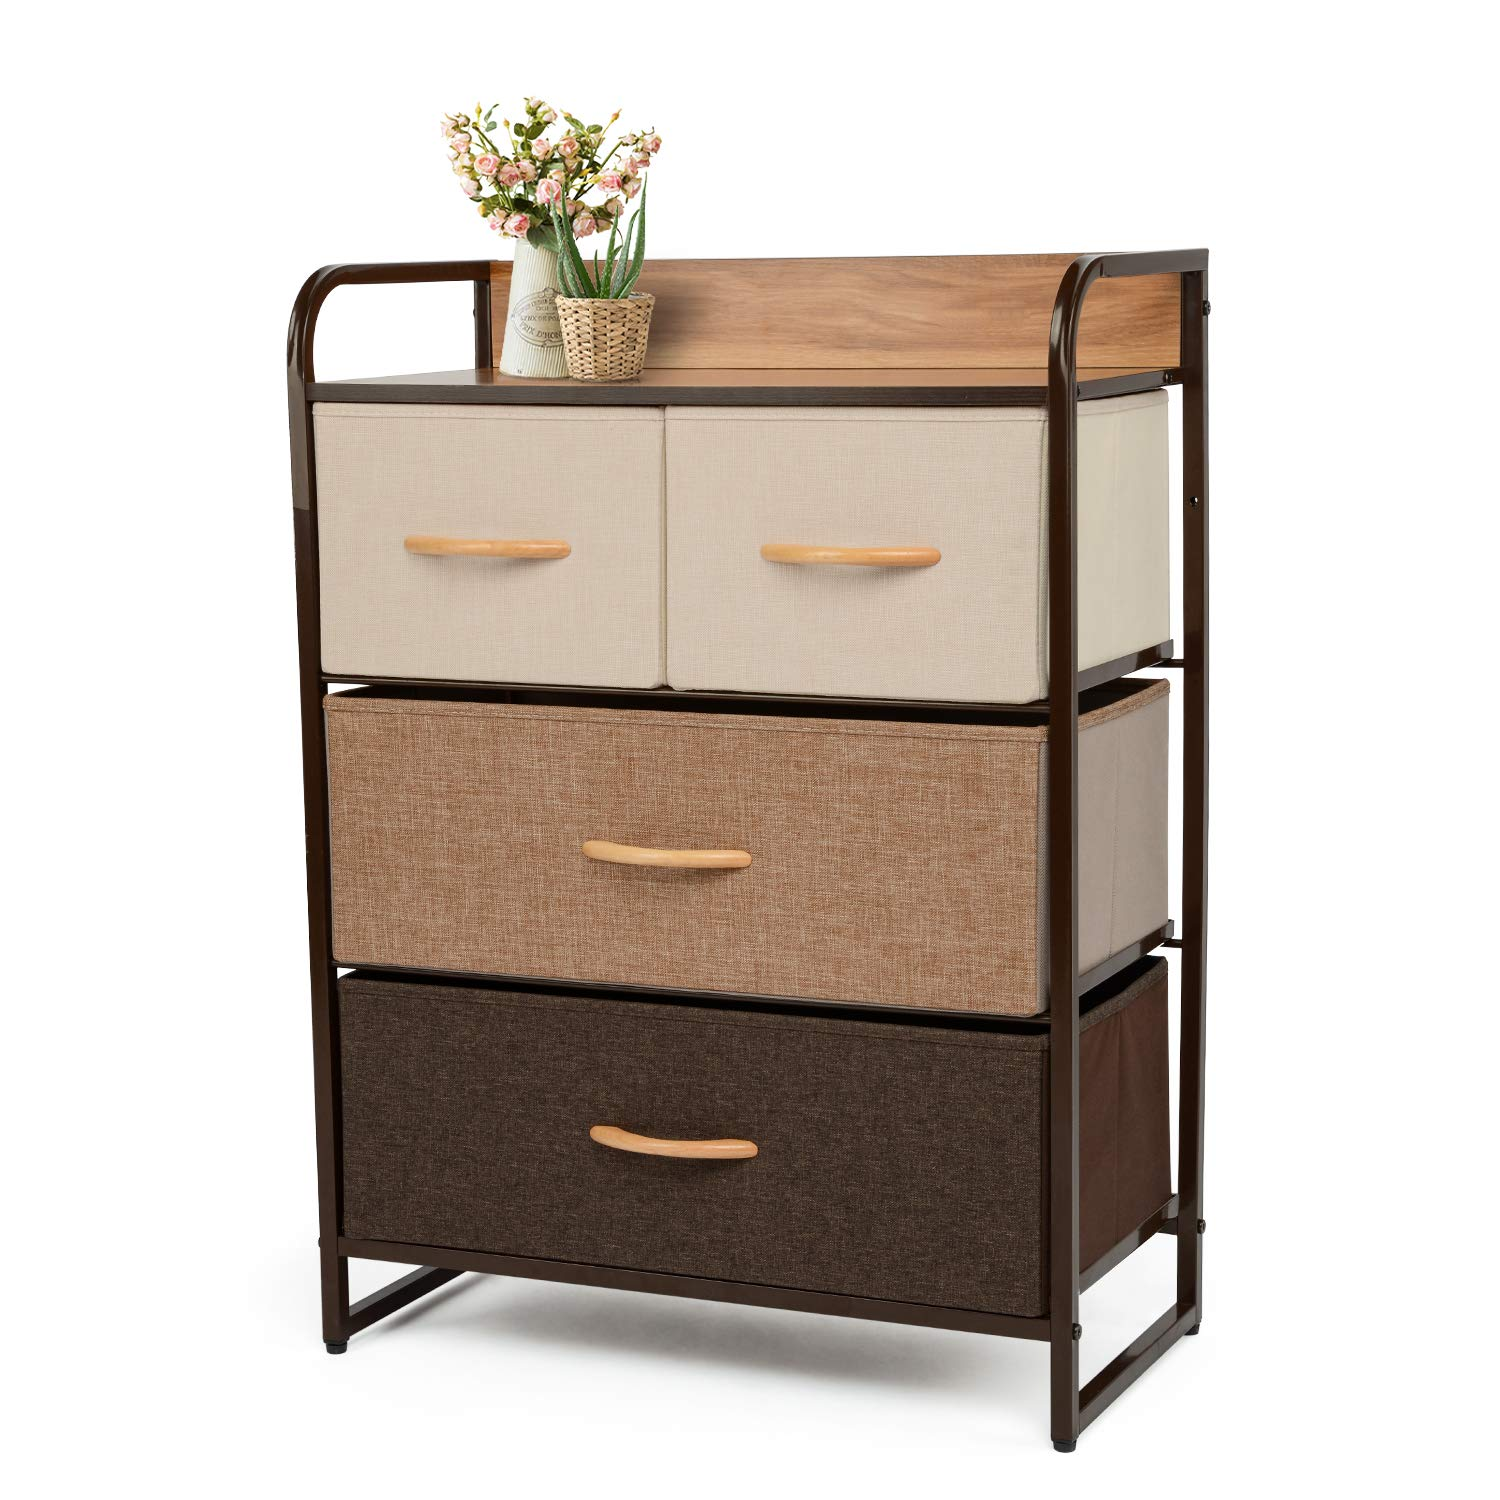 YOUNIS Dresser Organizer Cabinet Drawer Storage with 4 Drawers, Sturdy Steel Frame Storage Shelves, Wood Top Closet Storage, Easy Pull Fabric Bins - Organizer Unit for Homes, Offices, Dormitories by YOUNIS